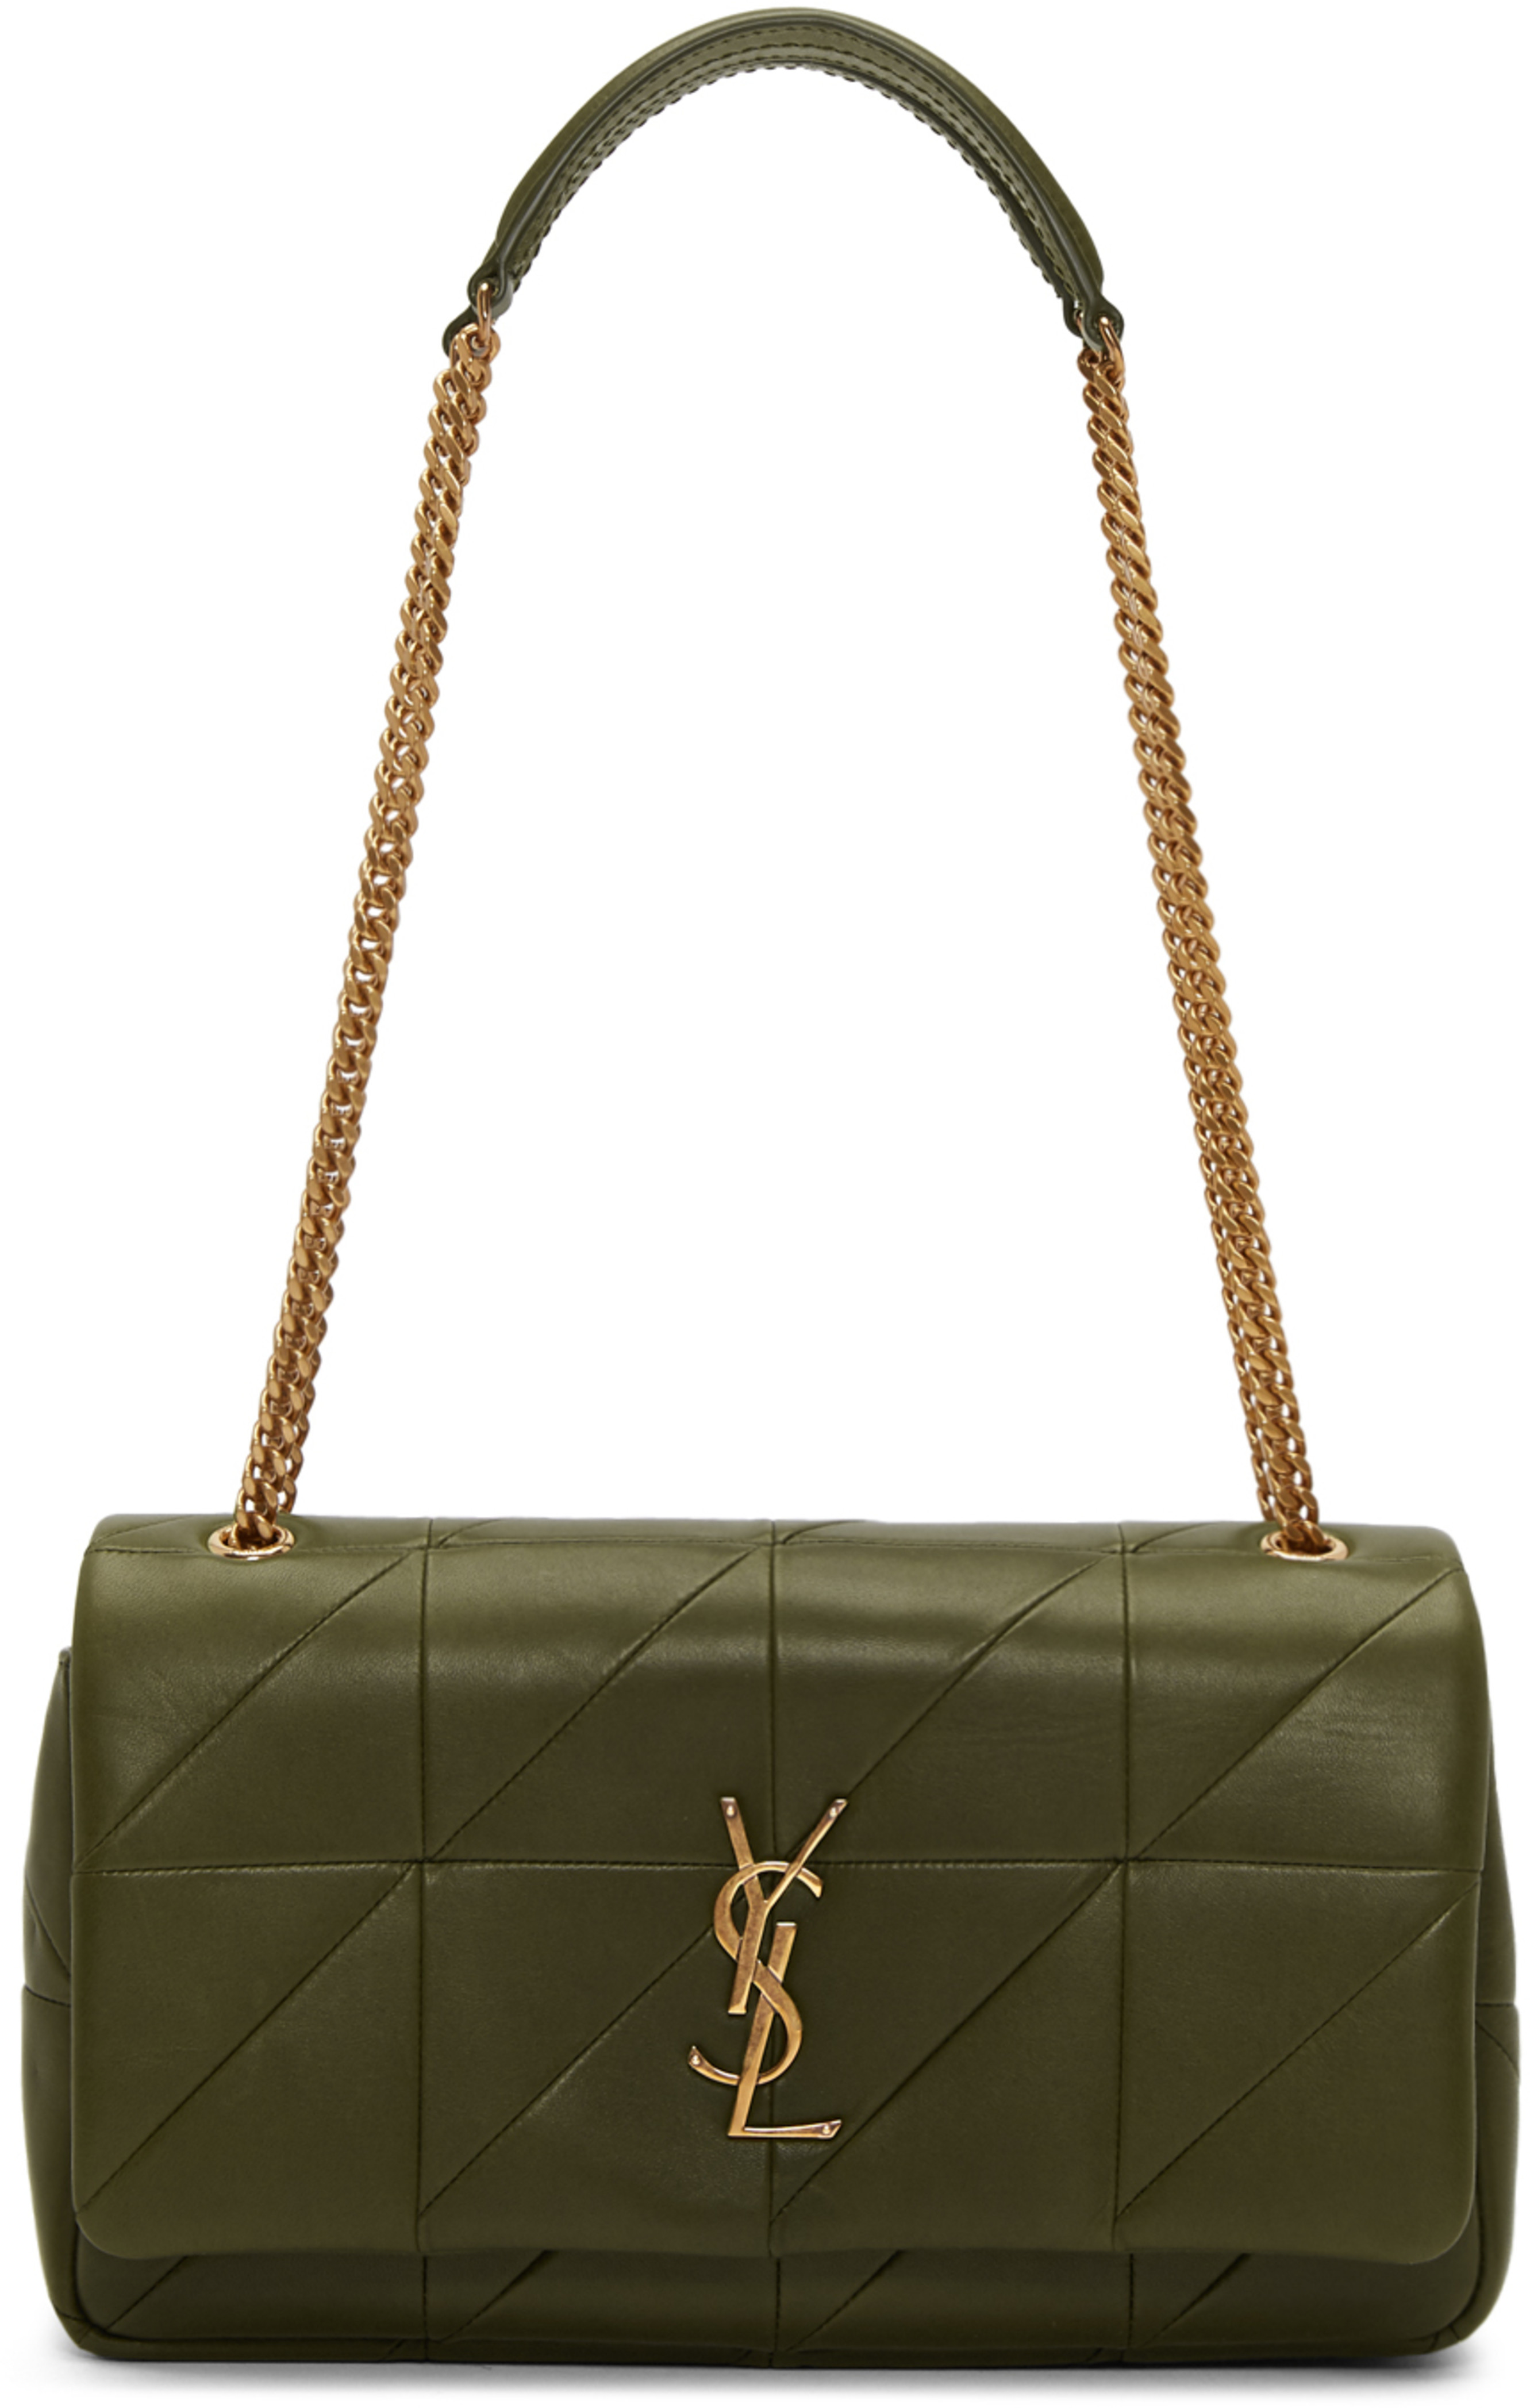 6b97a05d9d Saint Laurent bags for Women